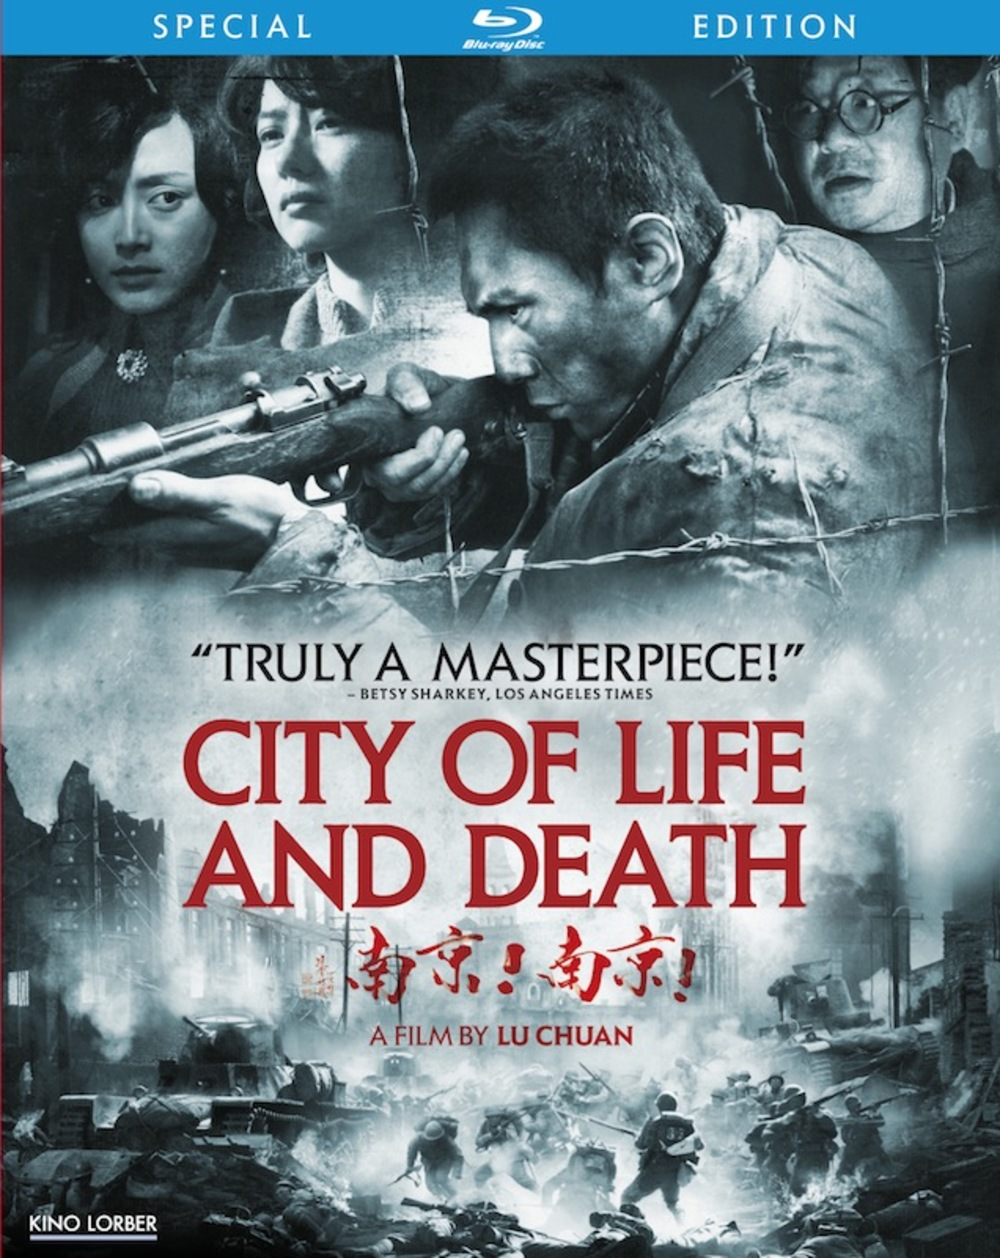 Nanjing! Nanjing! / City of Life and Death (2009)